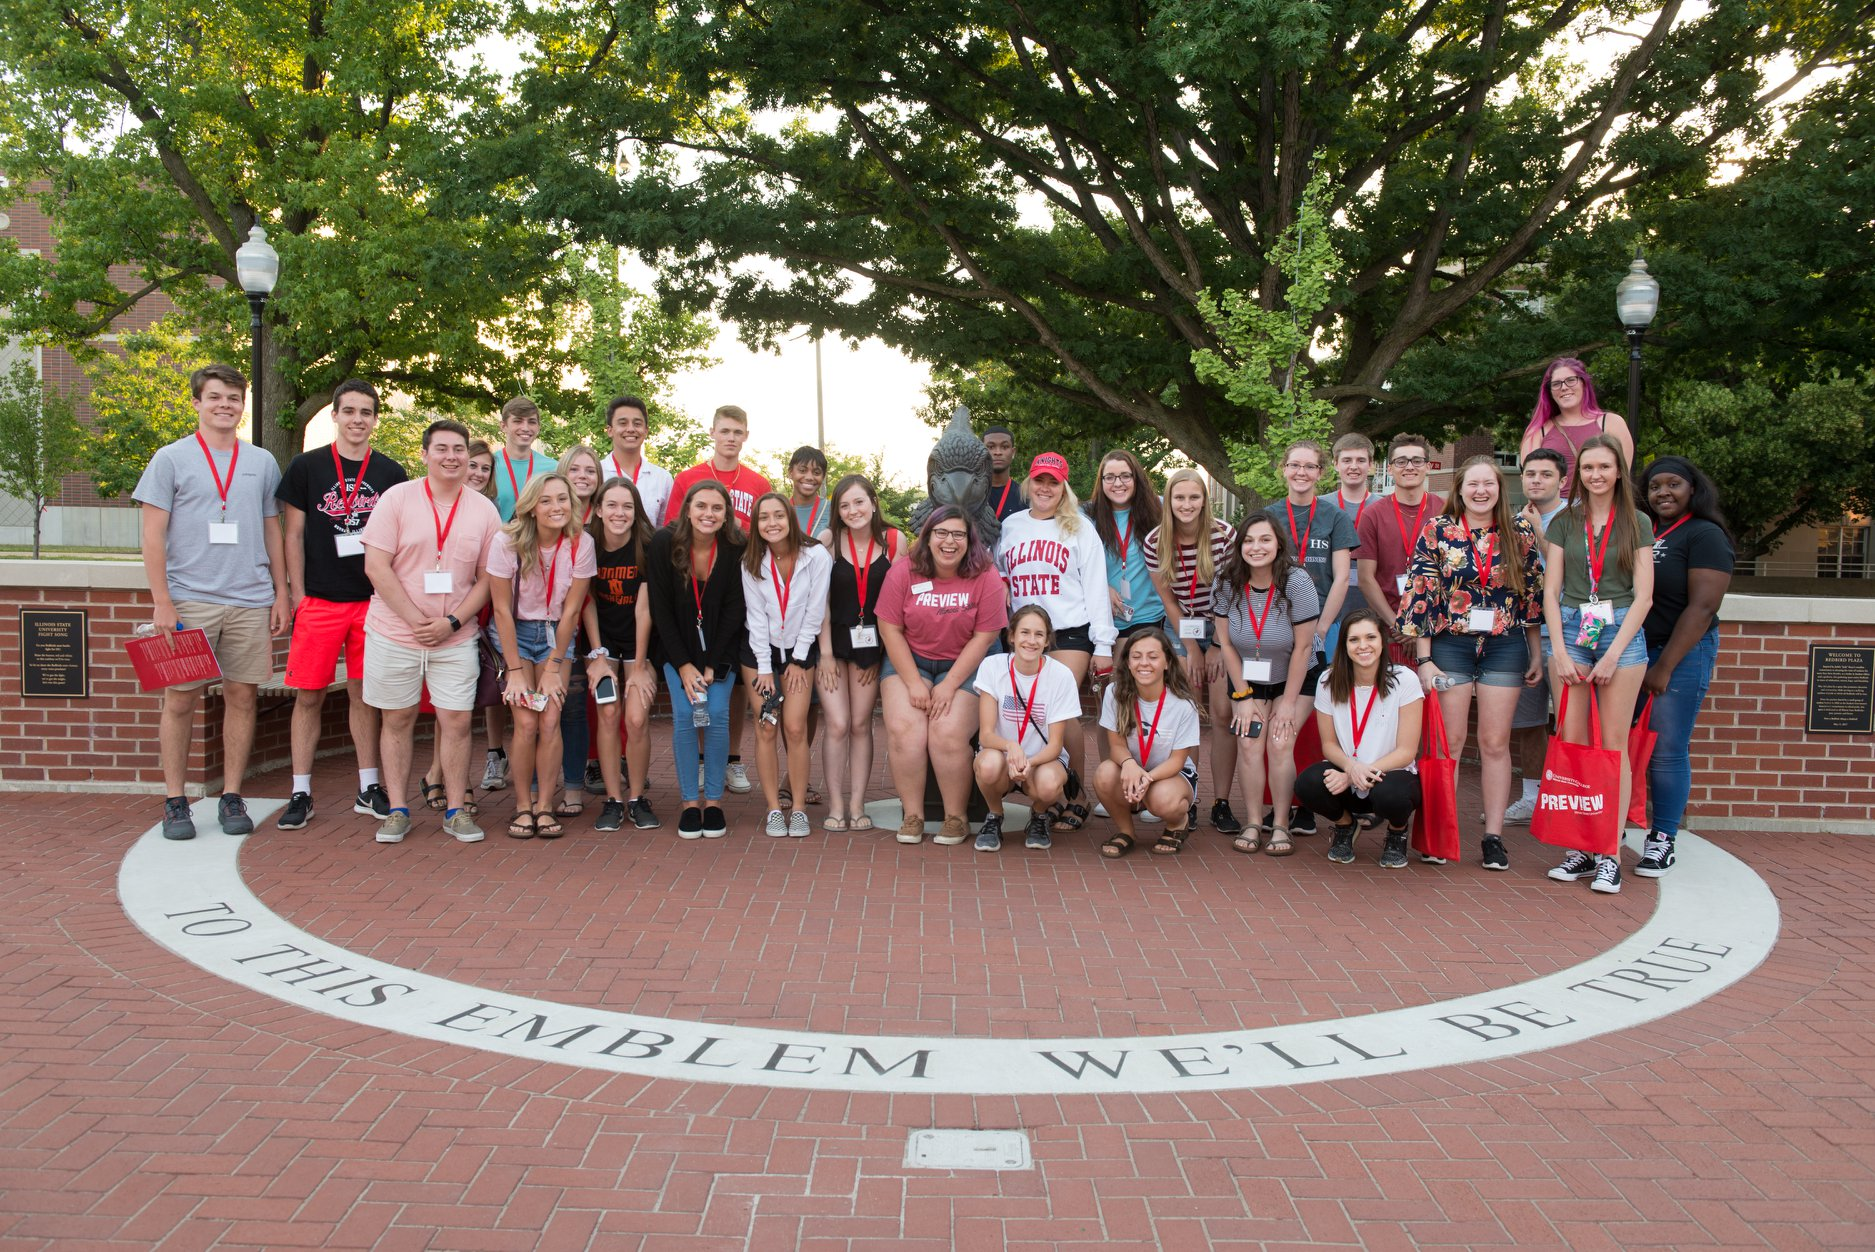 Group of students on campus during Preview standing around Battle Bird in Redbird Plaza.